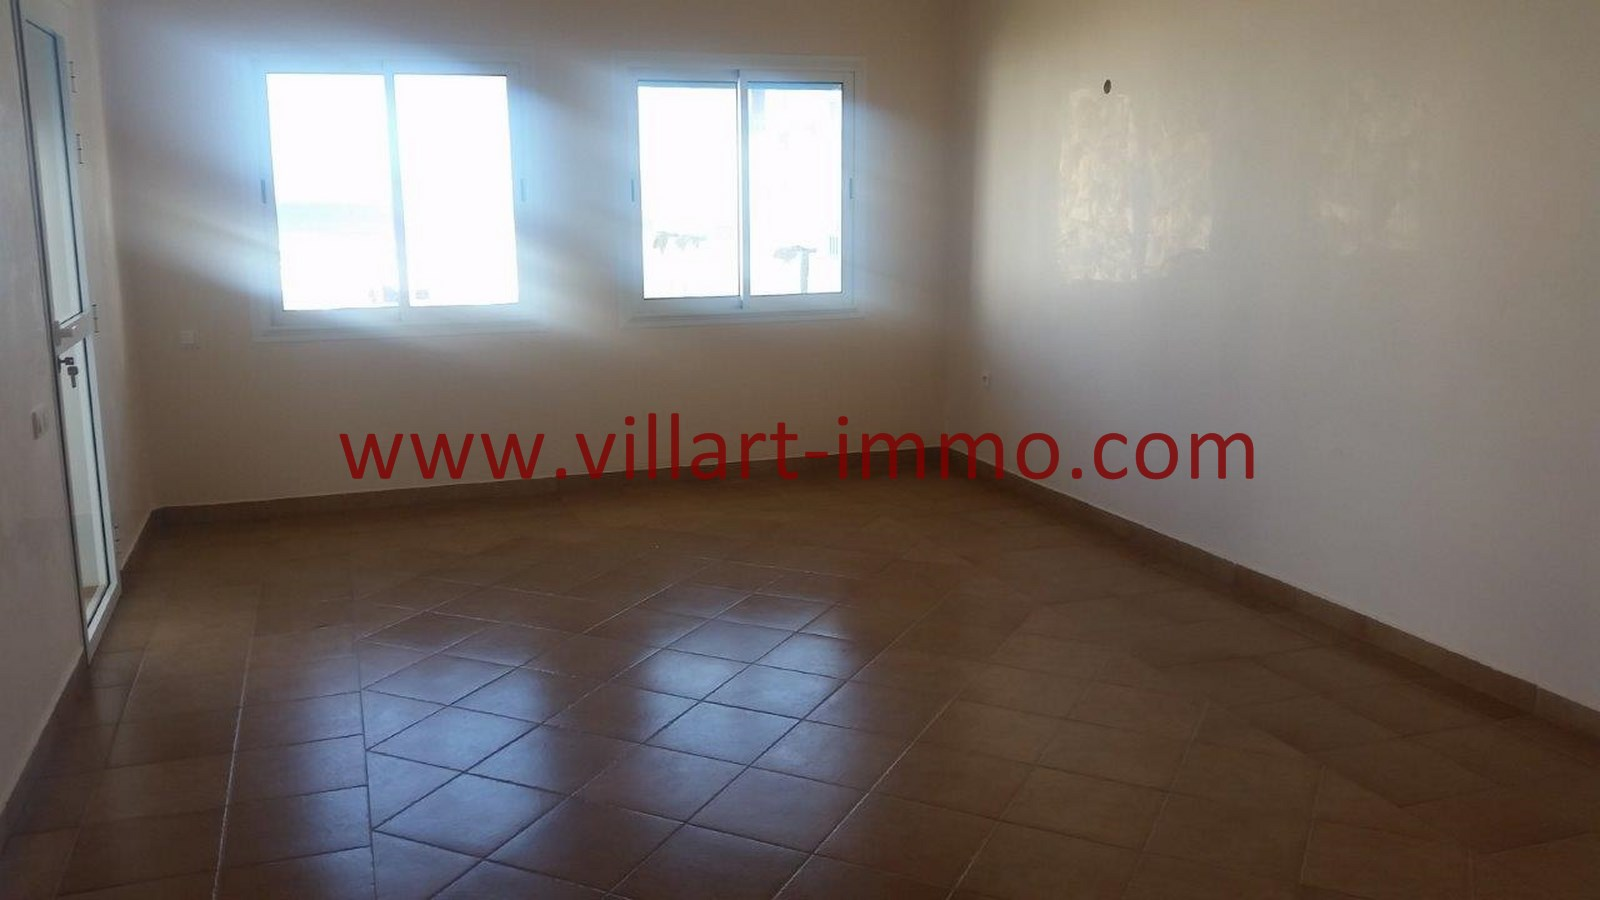 4-vente-appartement-region-tetouan-mdiq-salon-va395-villart-immo